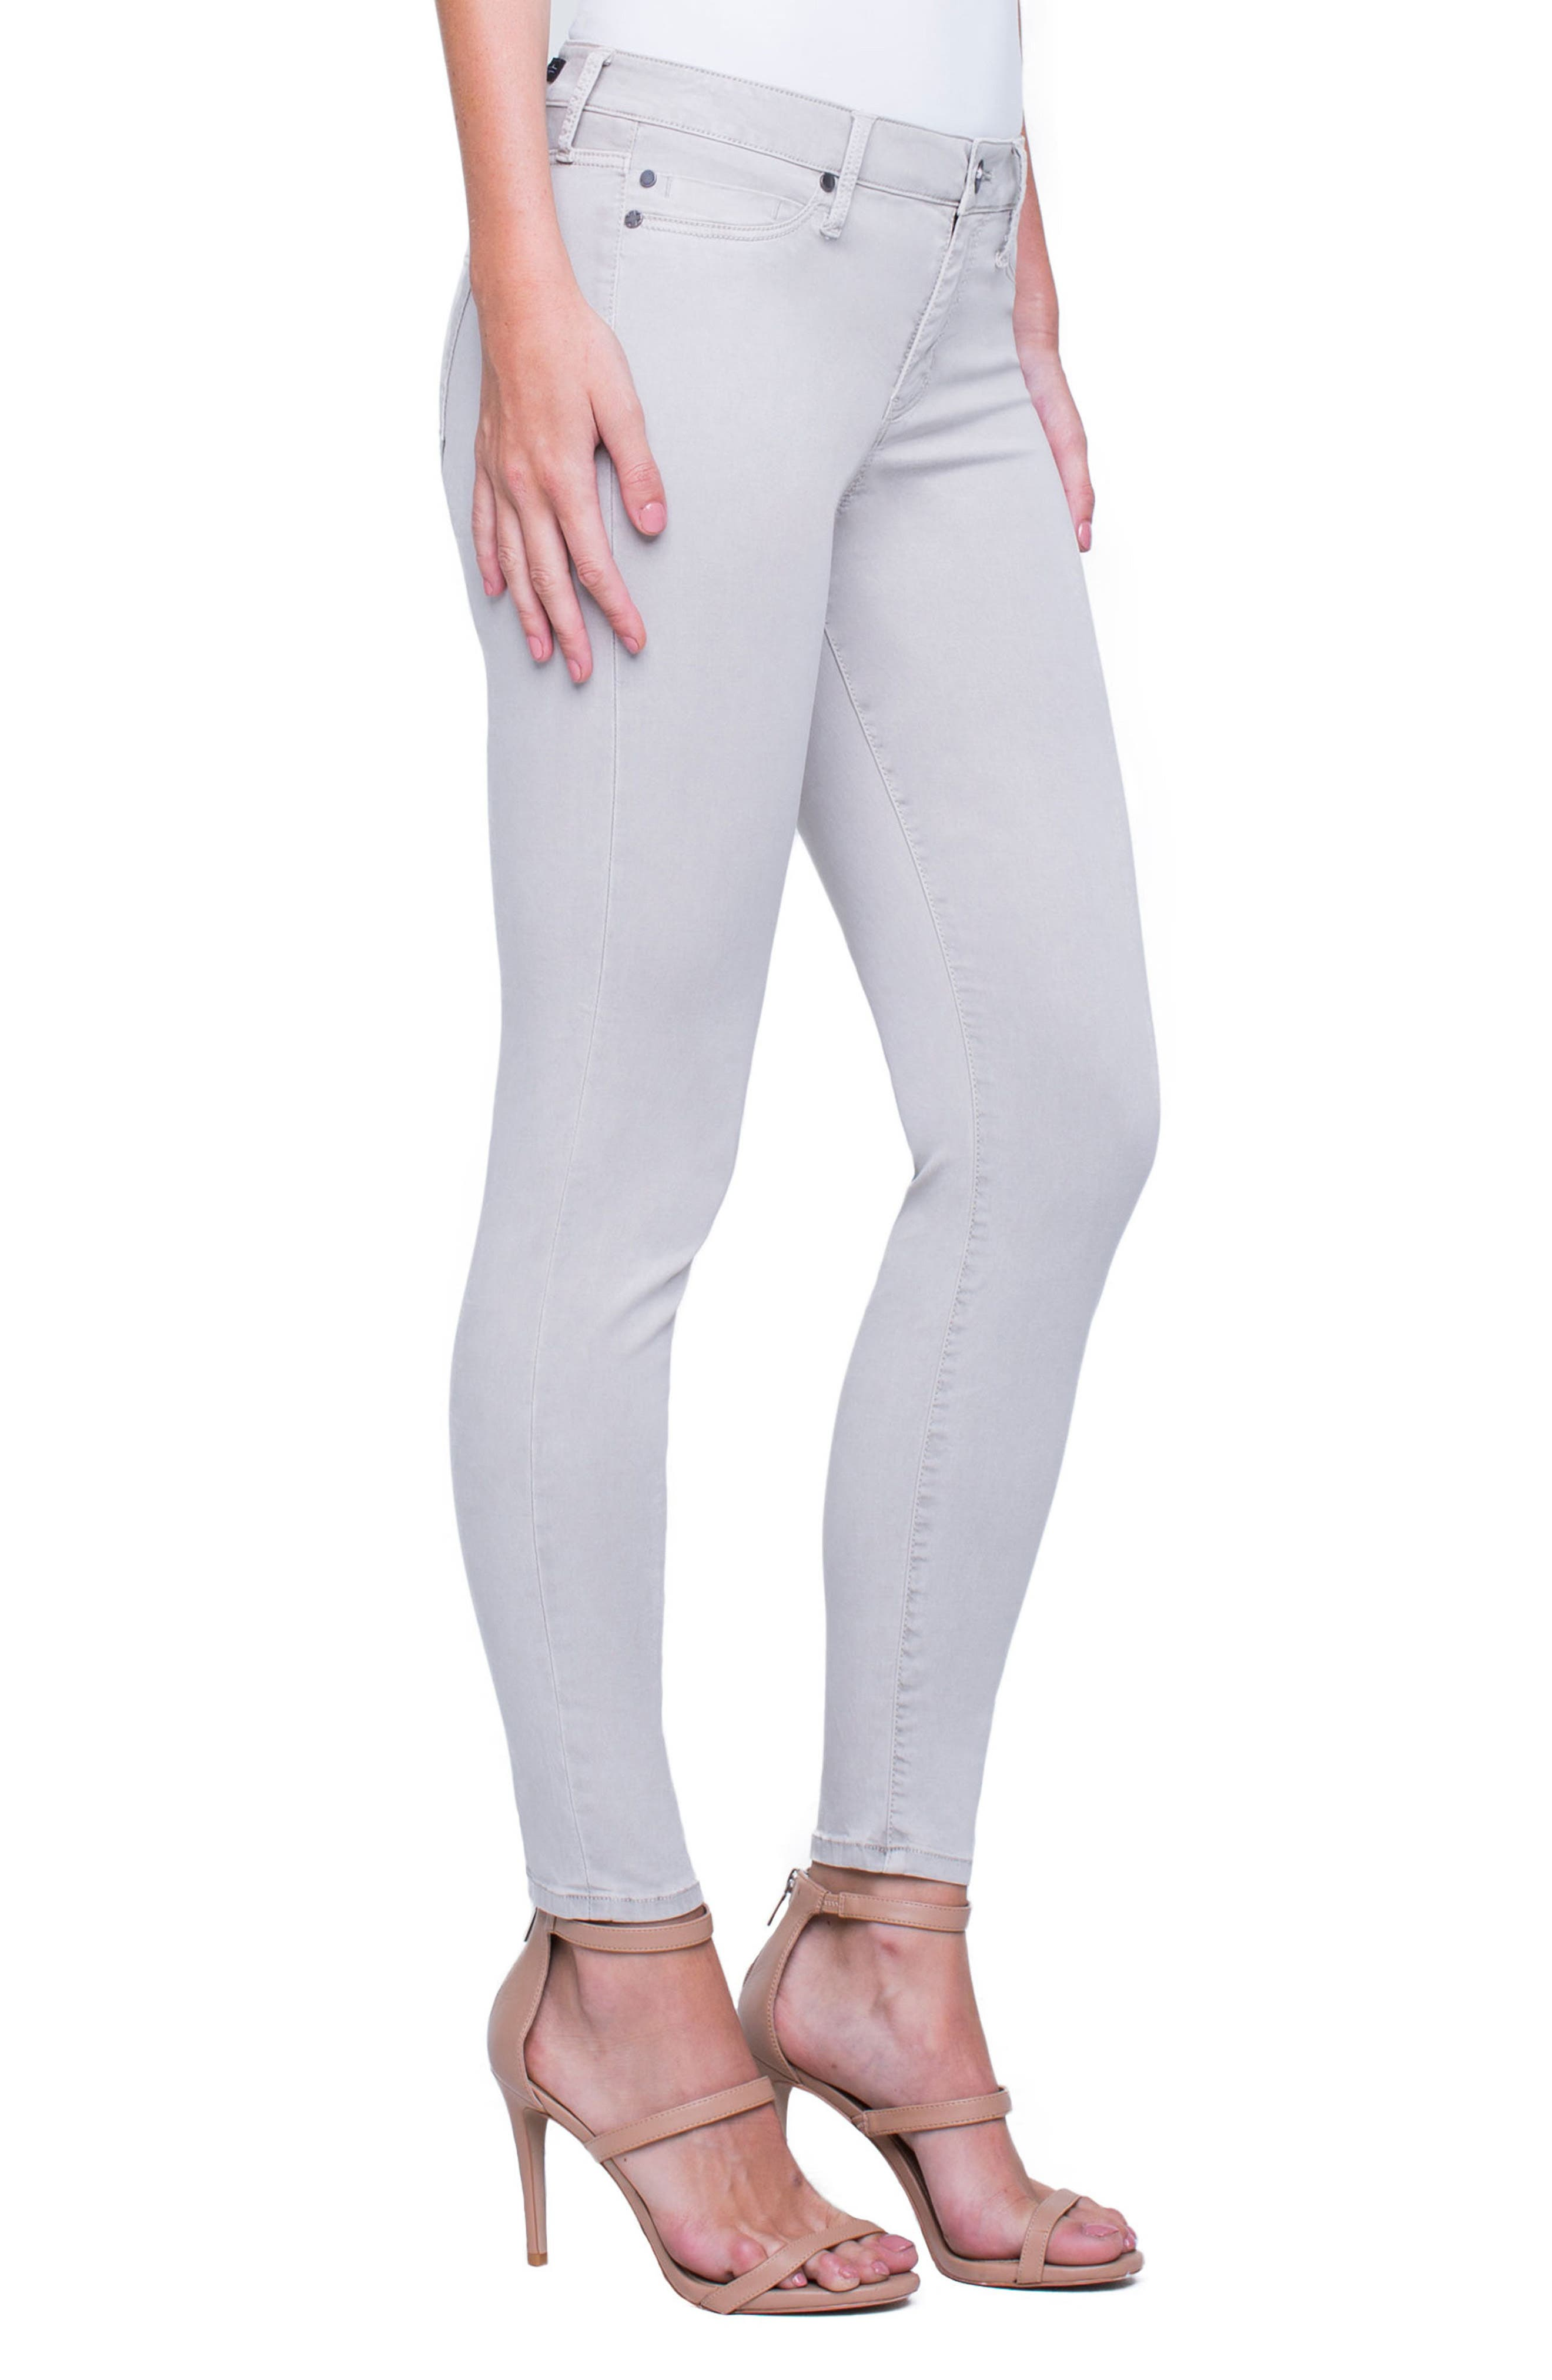 Madonna Ankle Jeans,                             Alternate thumbnail 3, color,                             Marble Ivory